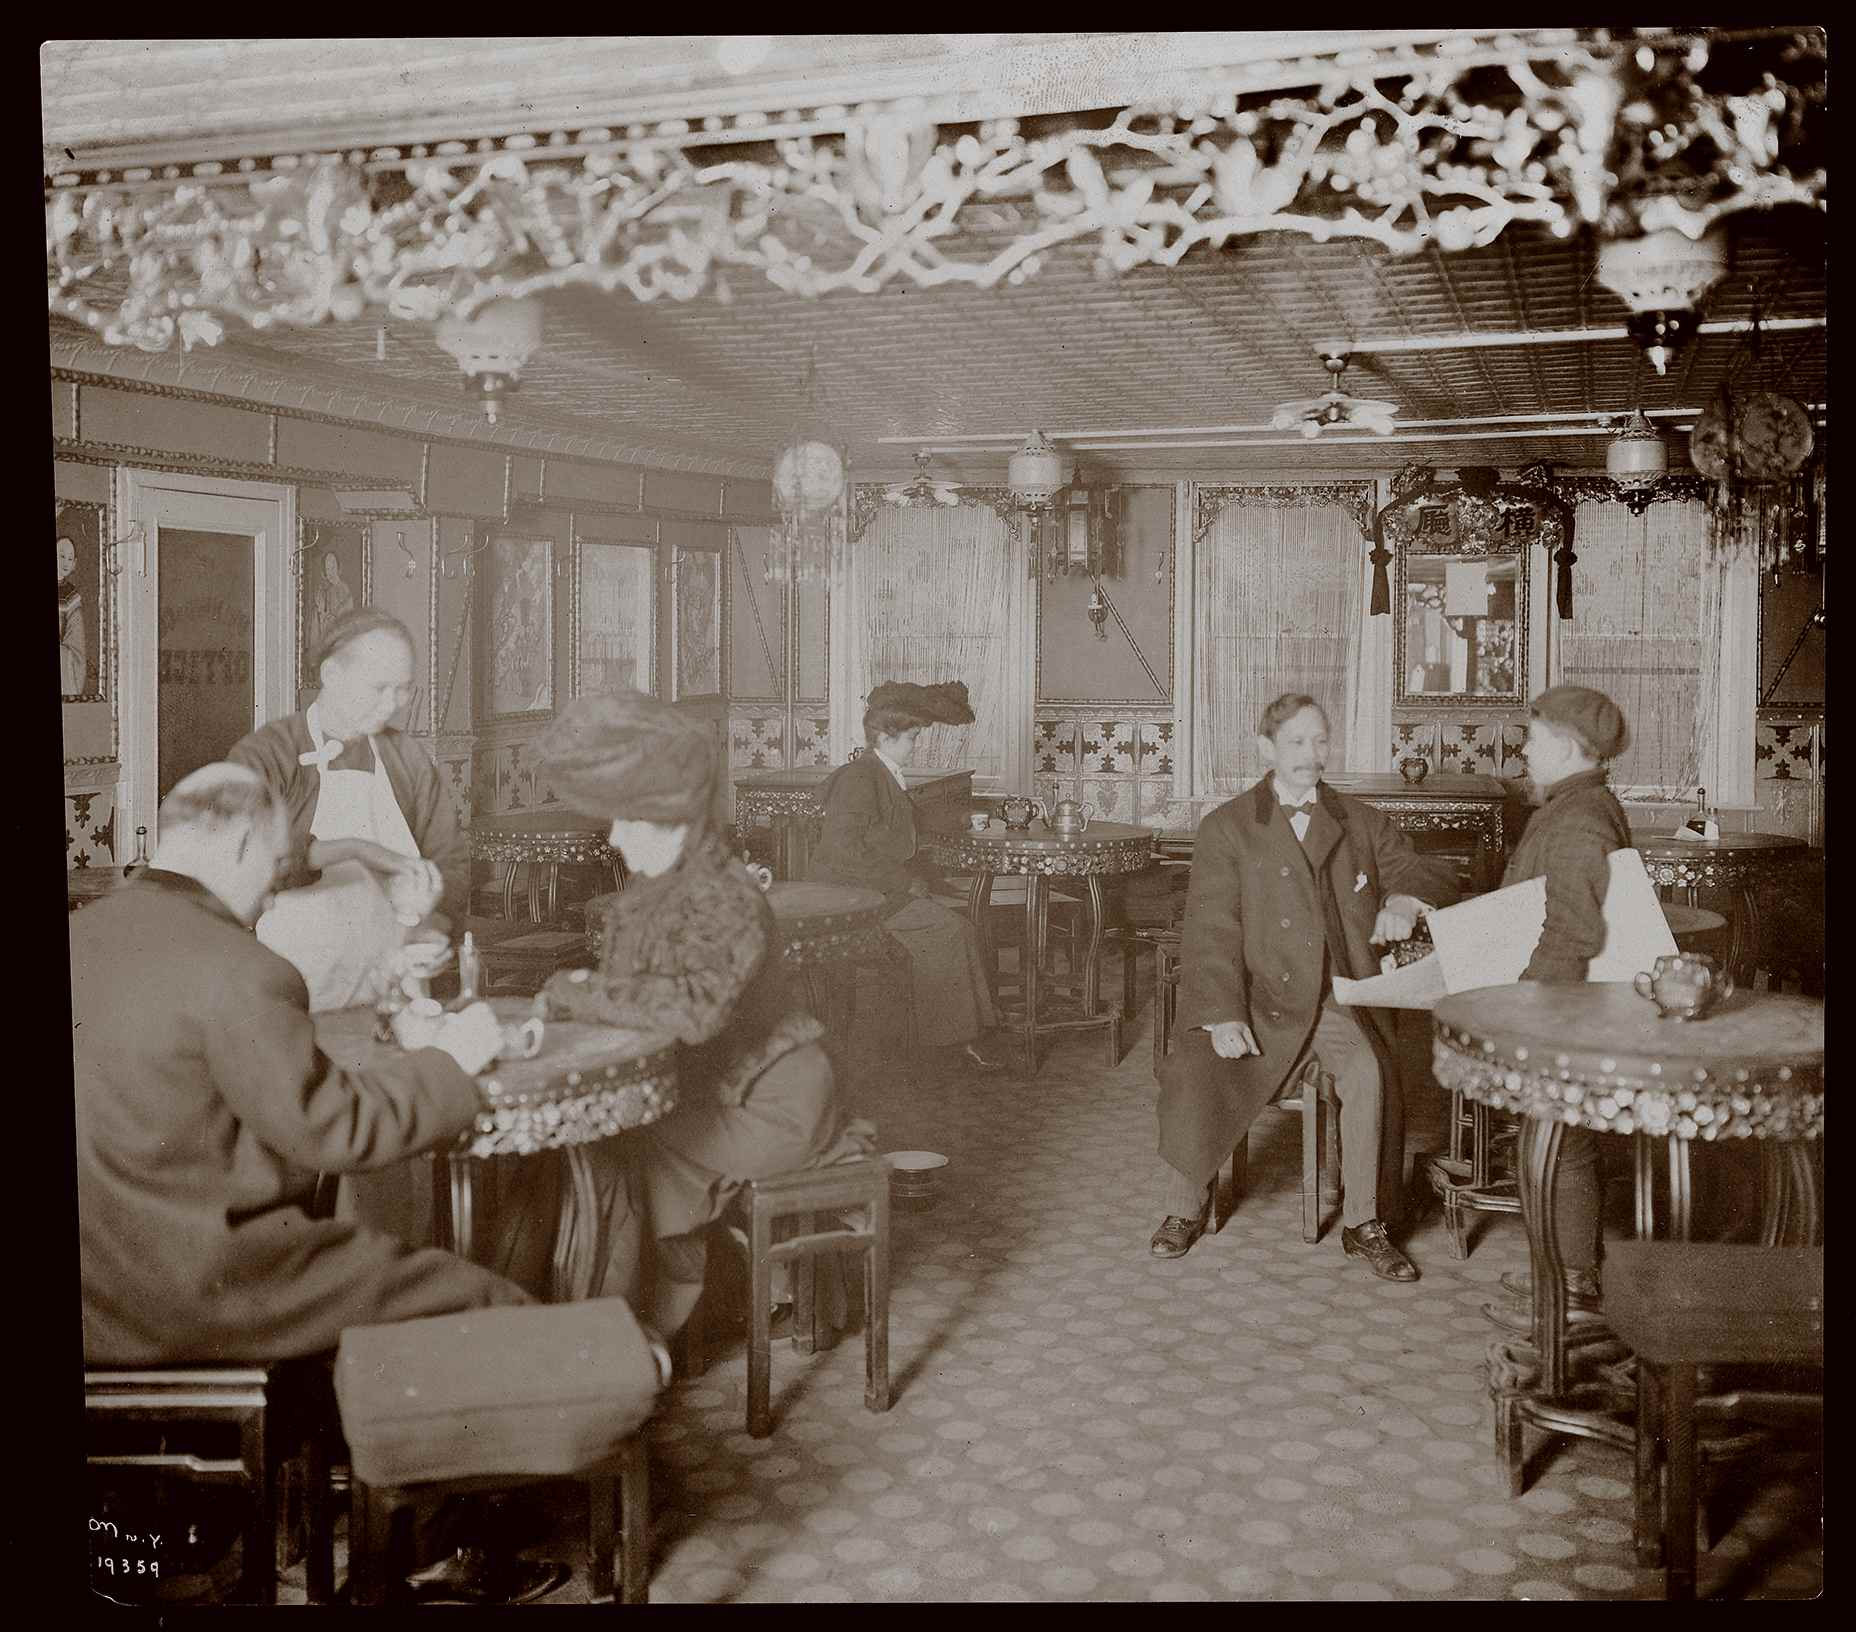 A Chinese restaurant in 1905 (Photo courtesy the Museum of the City of New York, the Byron Collection)